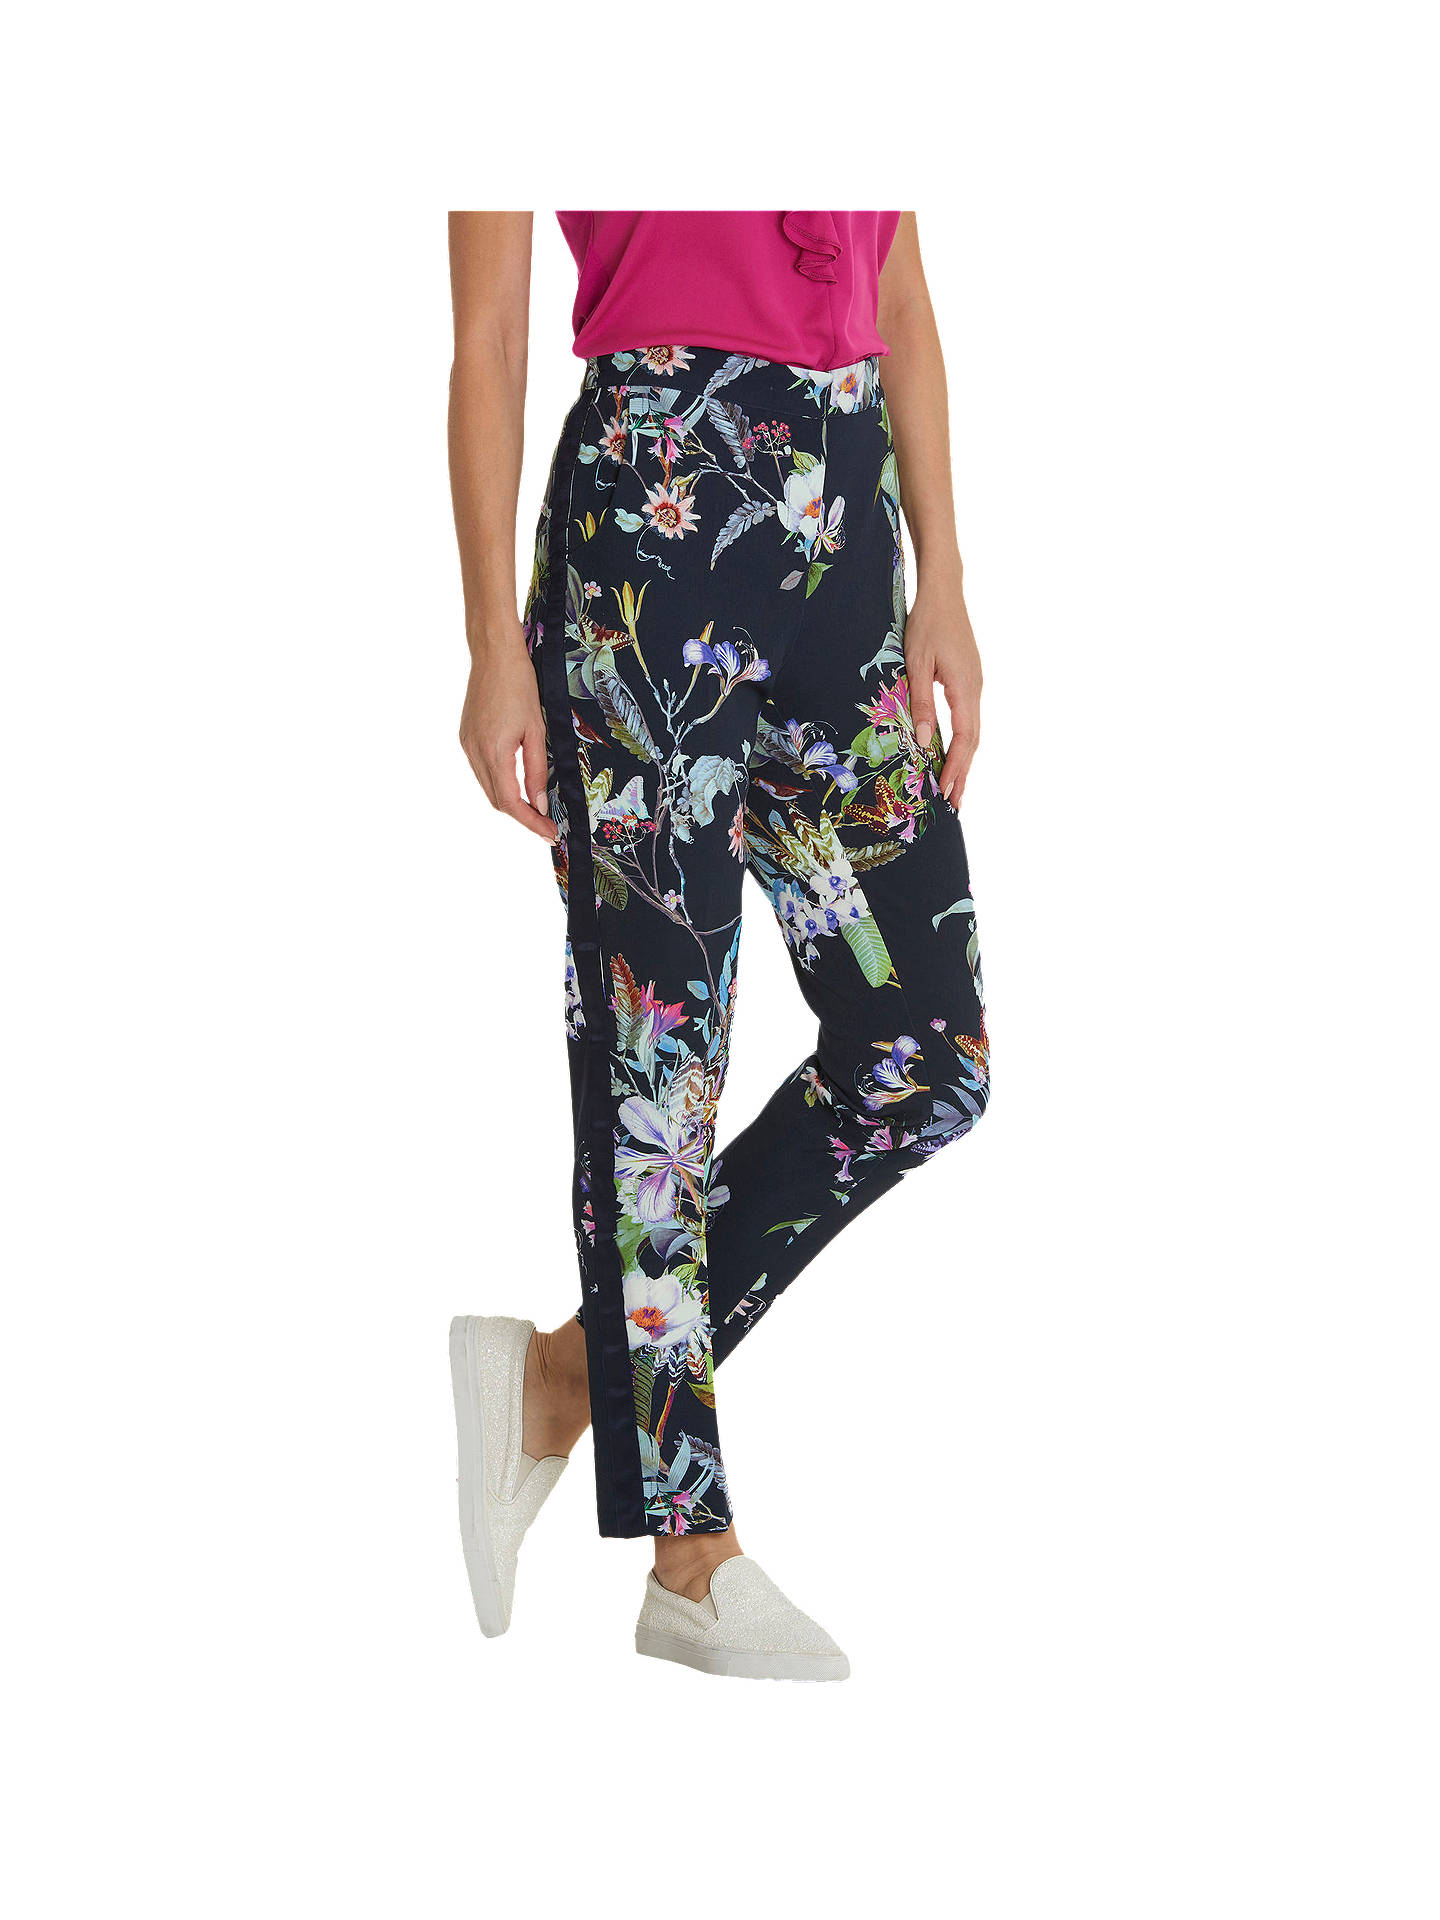 BuyBetty Barclay Floral Print Trousers, Dark Blue/Pink, 16 Online at johnlewis.com